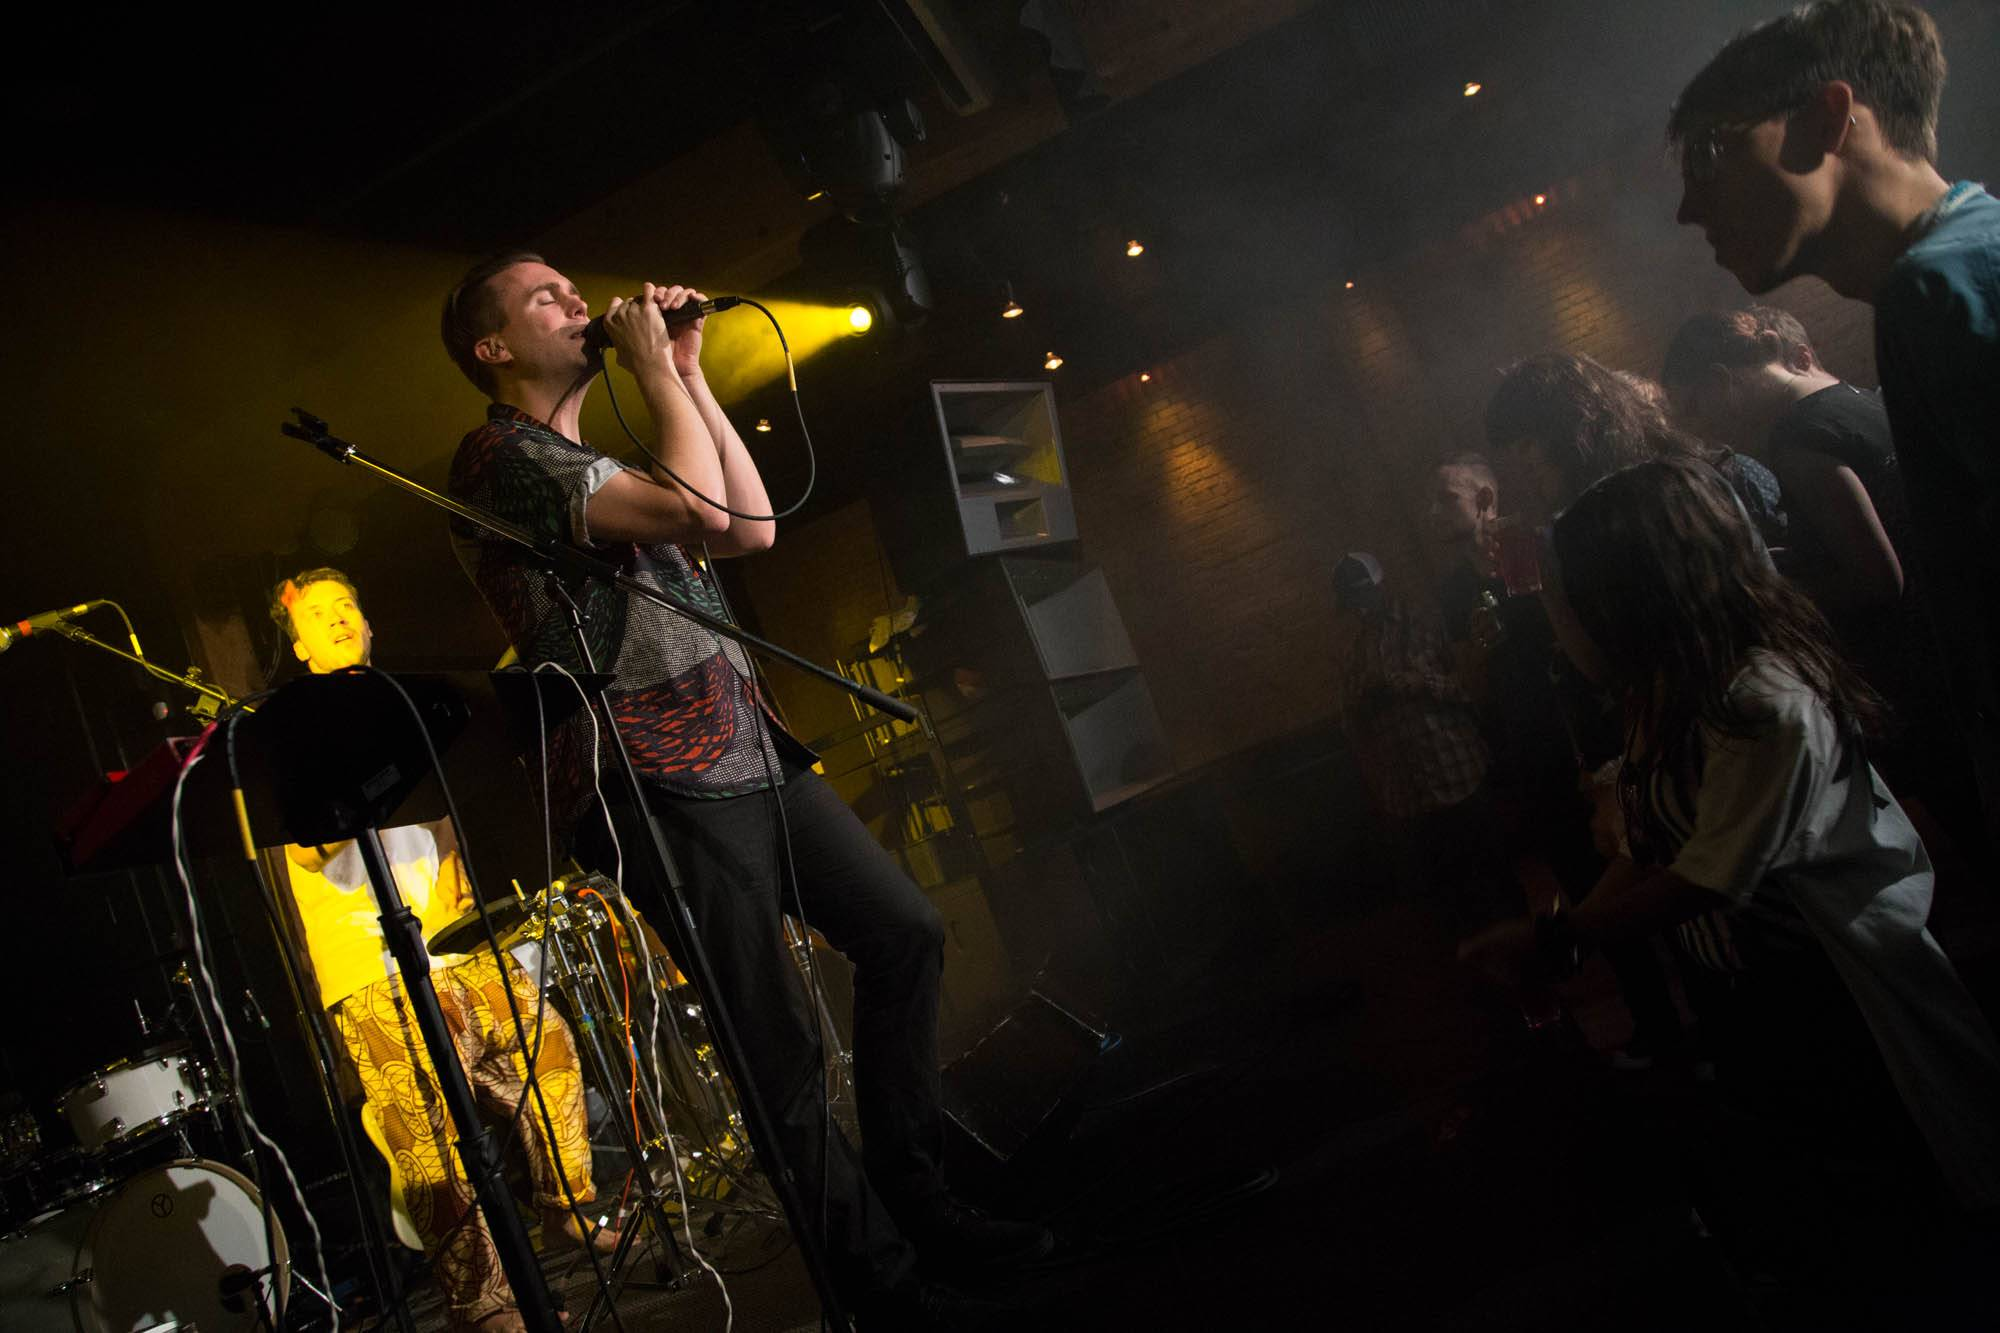 Lemonade at Fortune Sound Club, Vancouver, Oct. 25 2014. Kirk Chantraine photo.